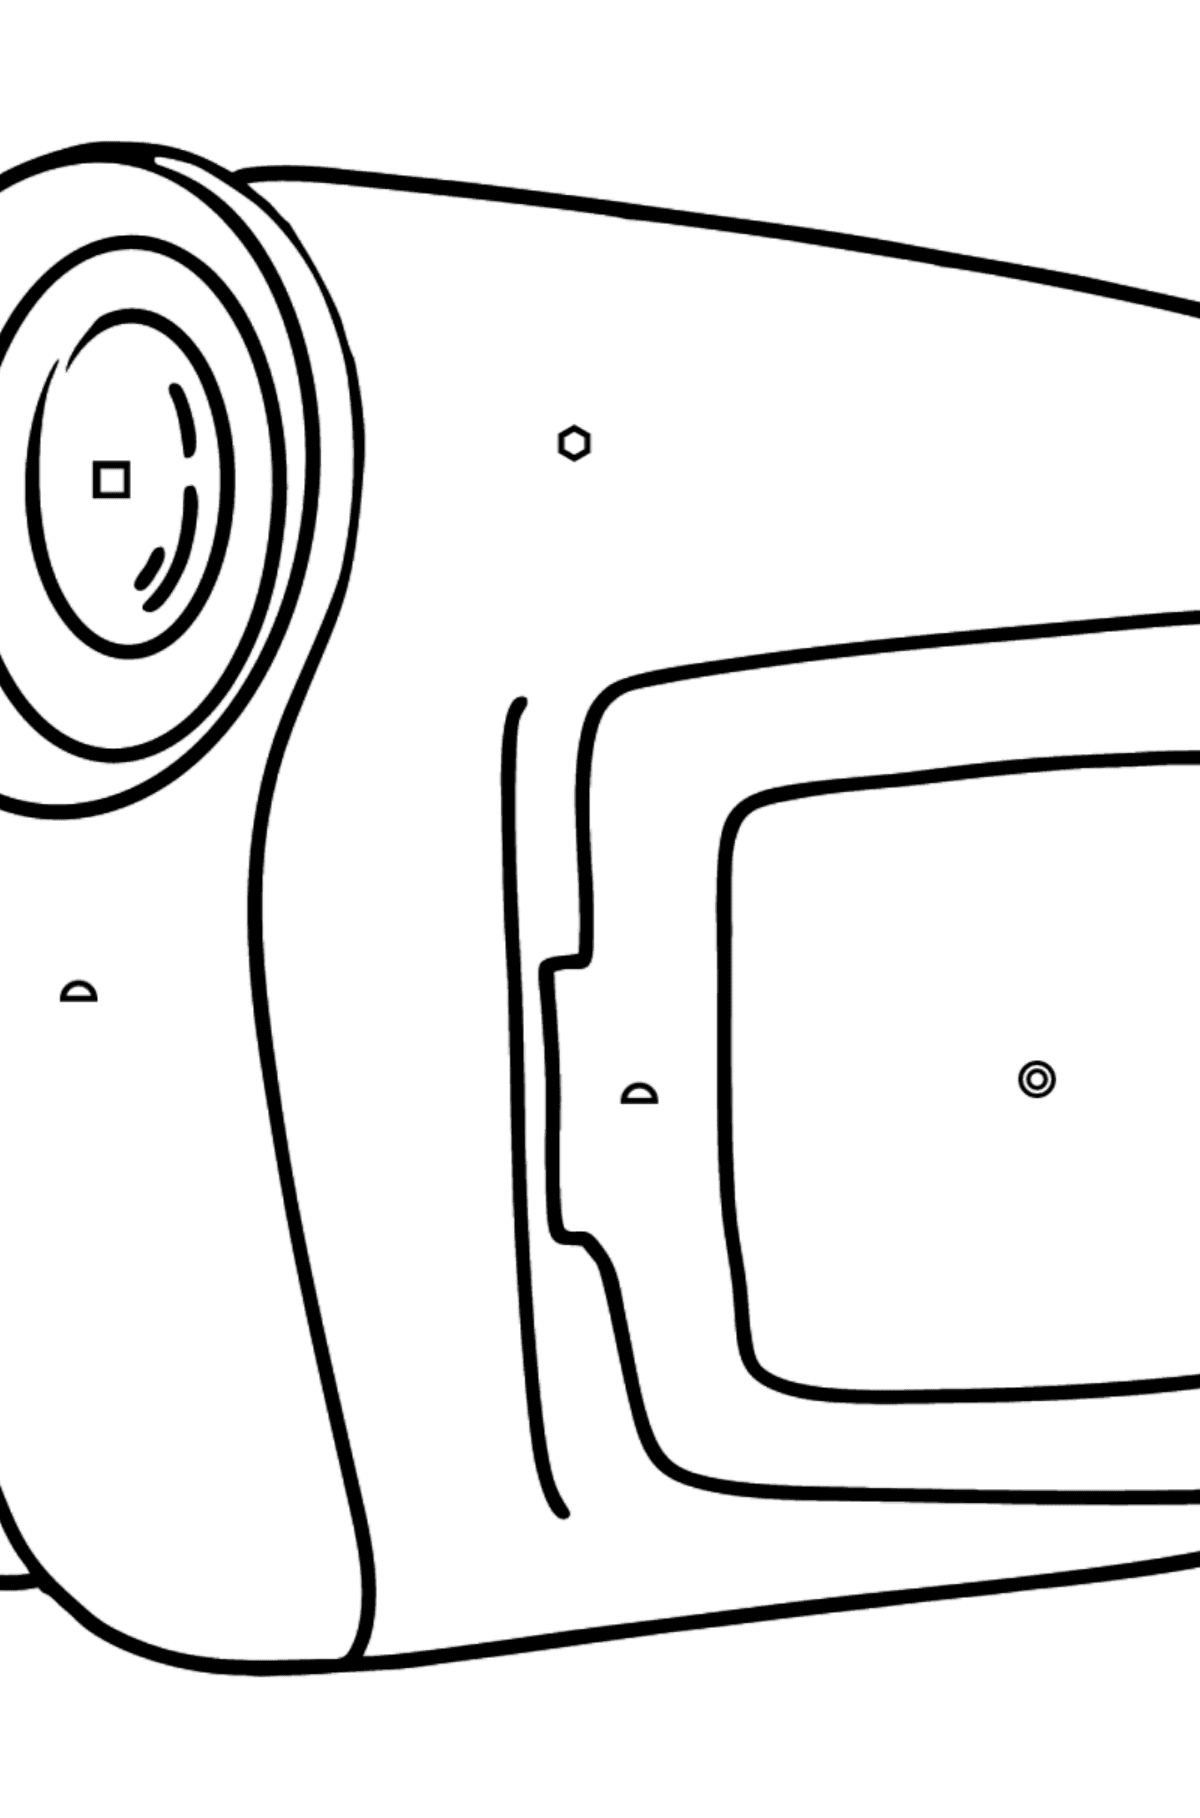 Video camera coloring page - Coloring by Symbols and Geometric Shapes for Kids